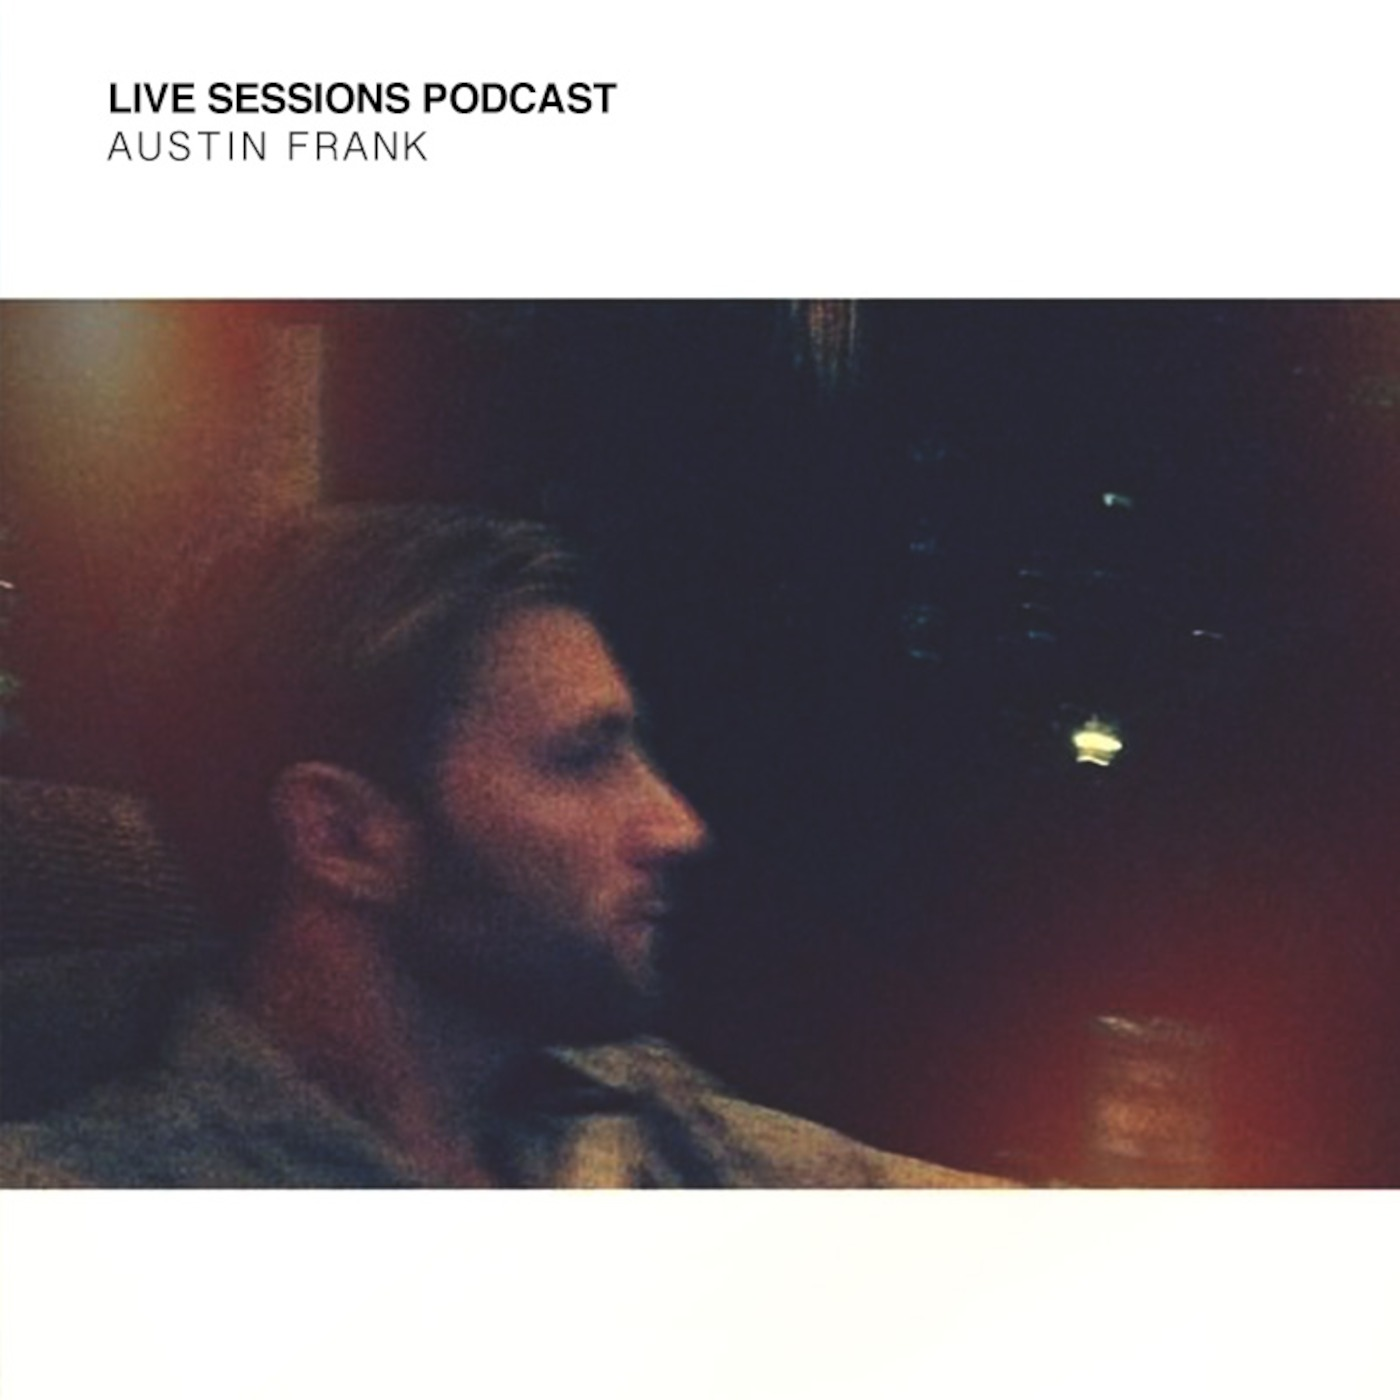 Austin Frank Presents: Live Sessions Podcast